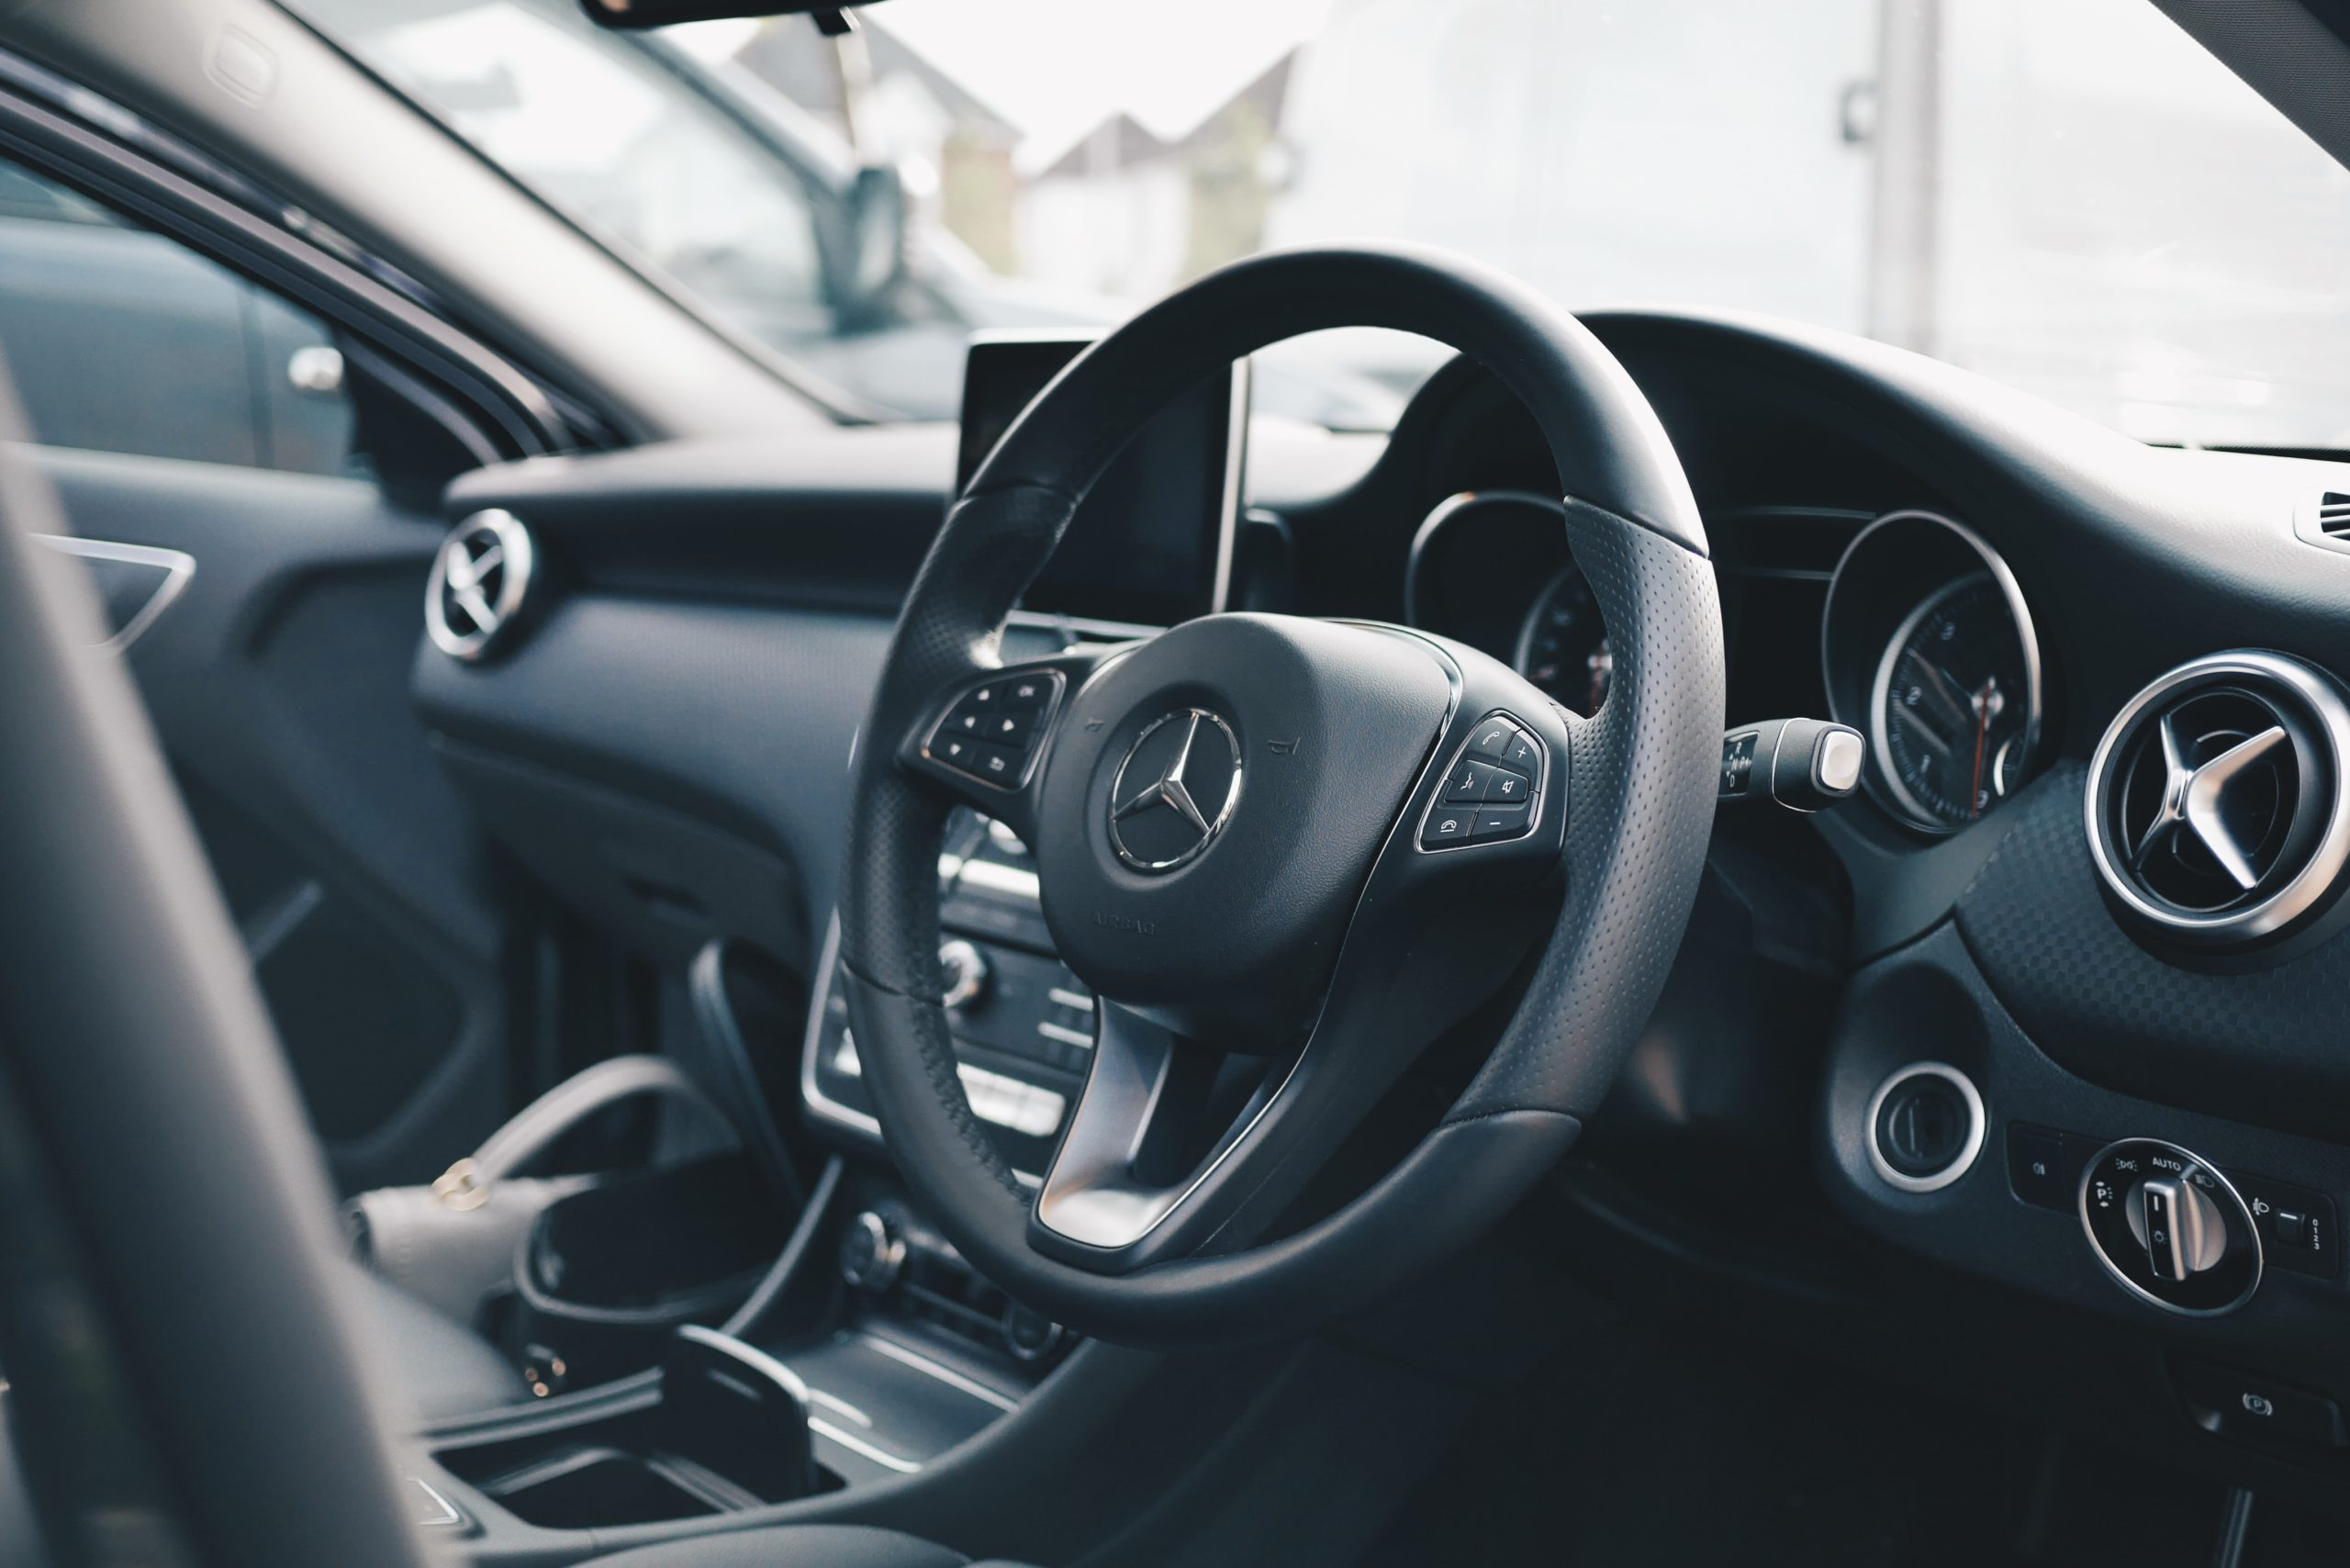 20 Best Car Interior Accessories for an Awesome Roadtrip